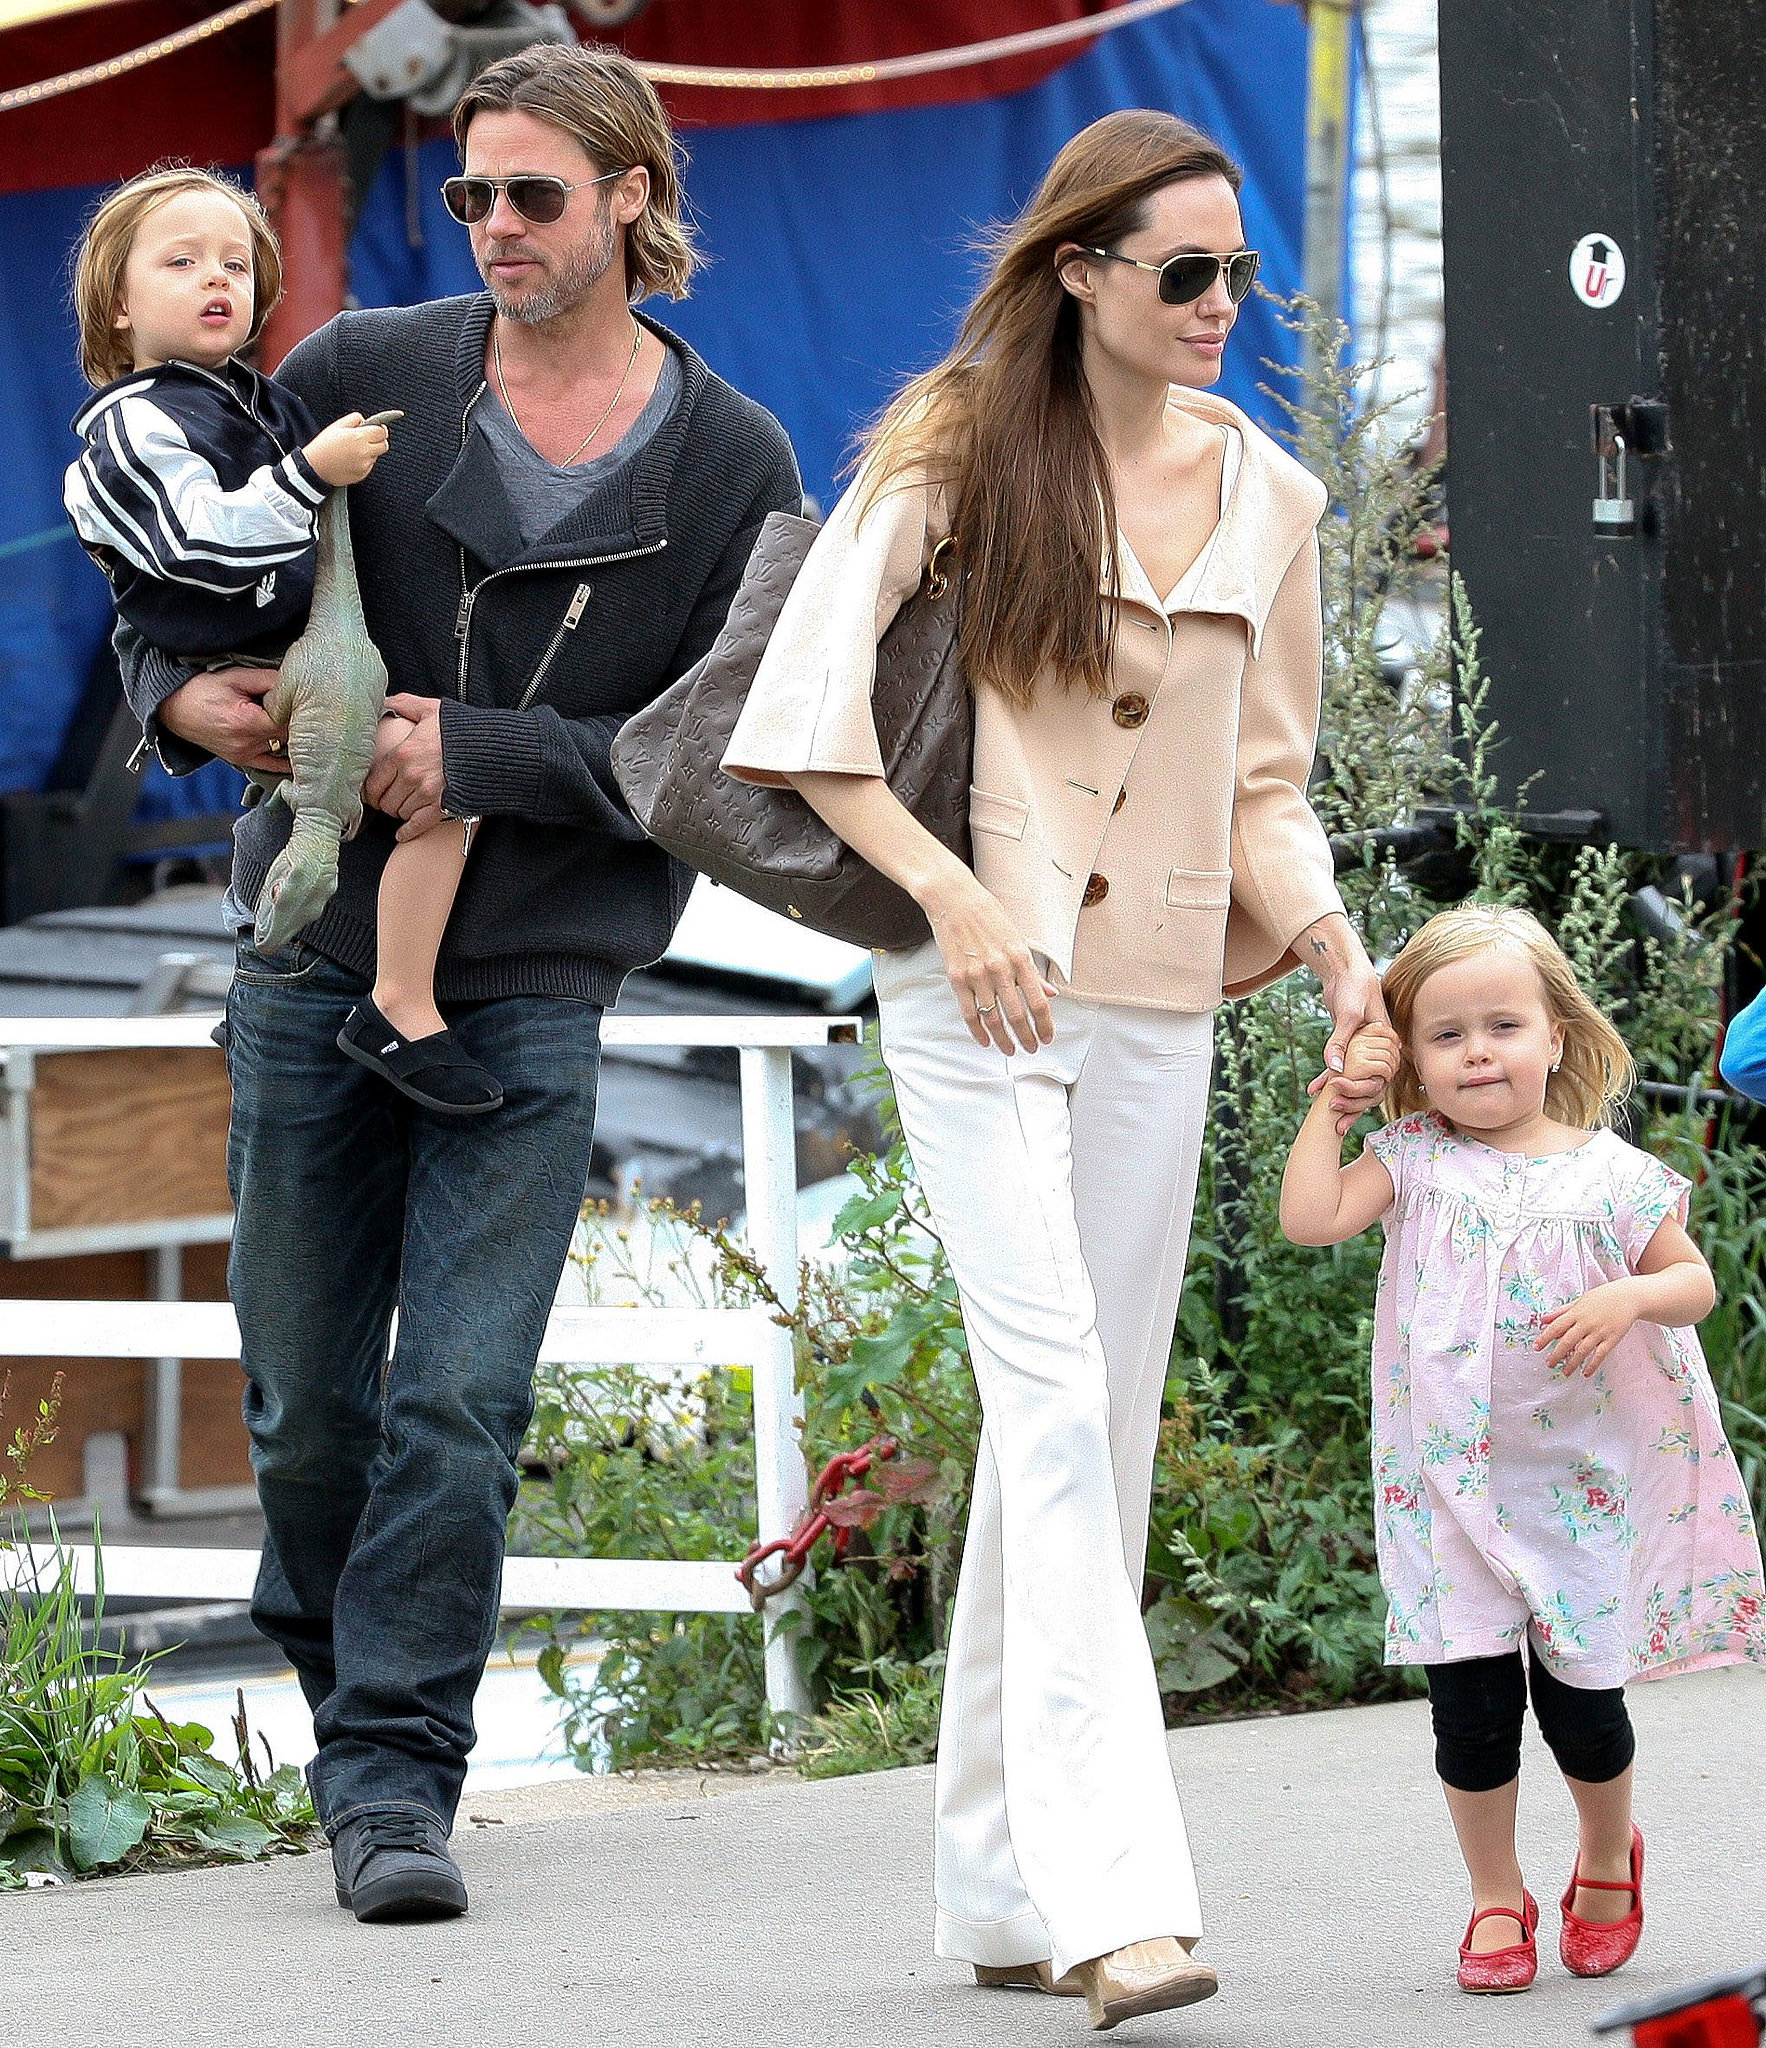 Brad Pitt and Angelina Jolie took Knox Jolie-Pitt and Vivienne Jolie-Pitt to a show on a boat in London in August 2011 with their brothers and sisters.